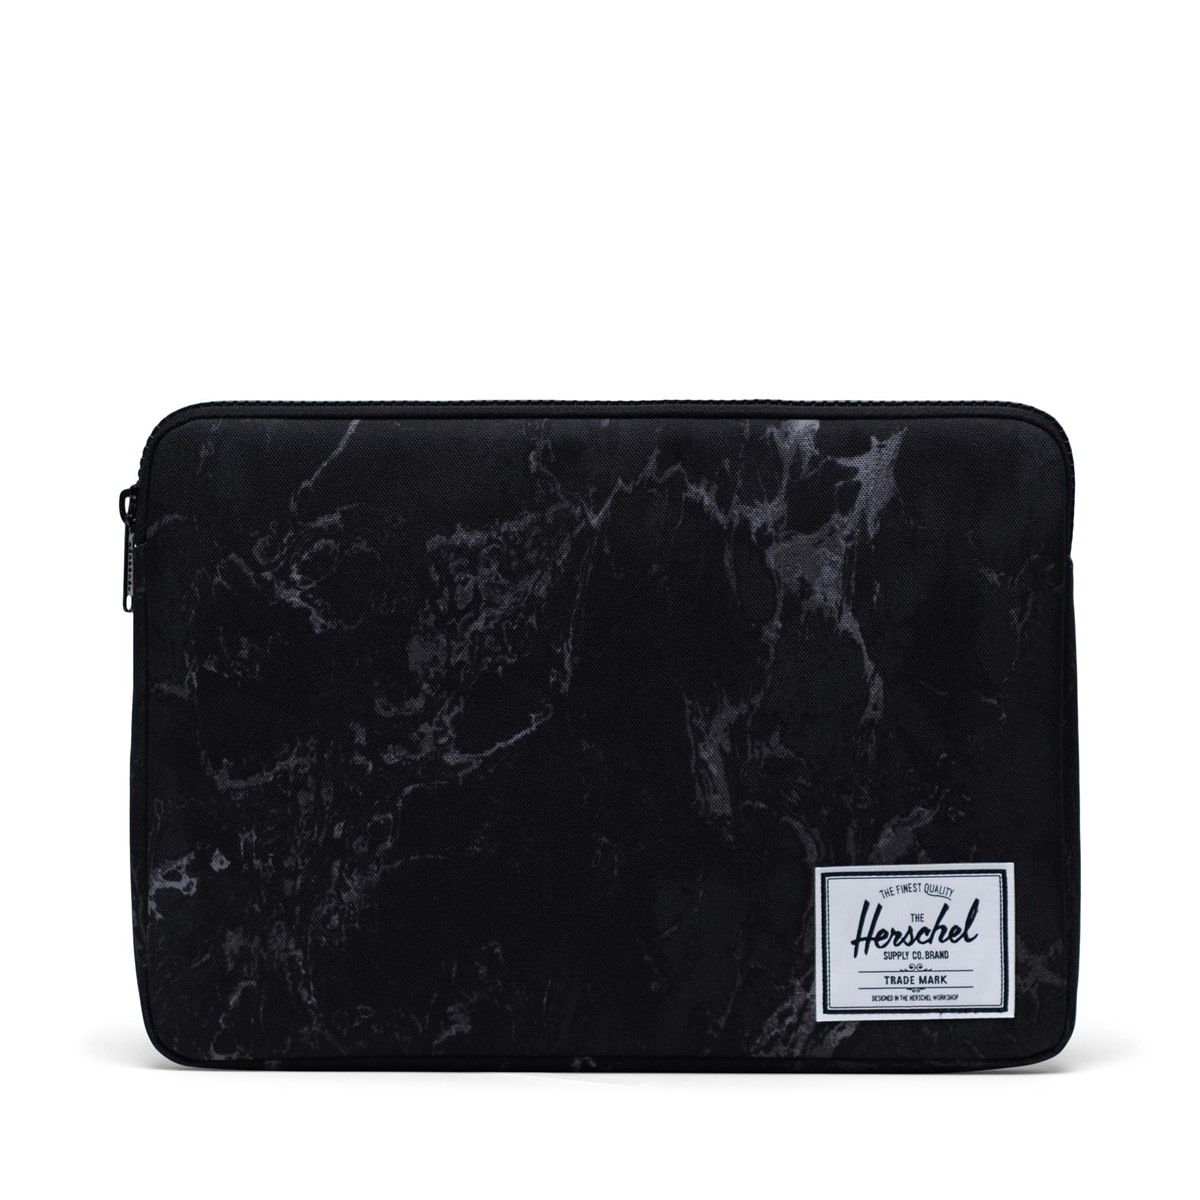 13 Anchor Sleeve in Black Marble